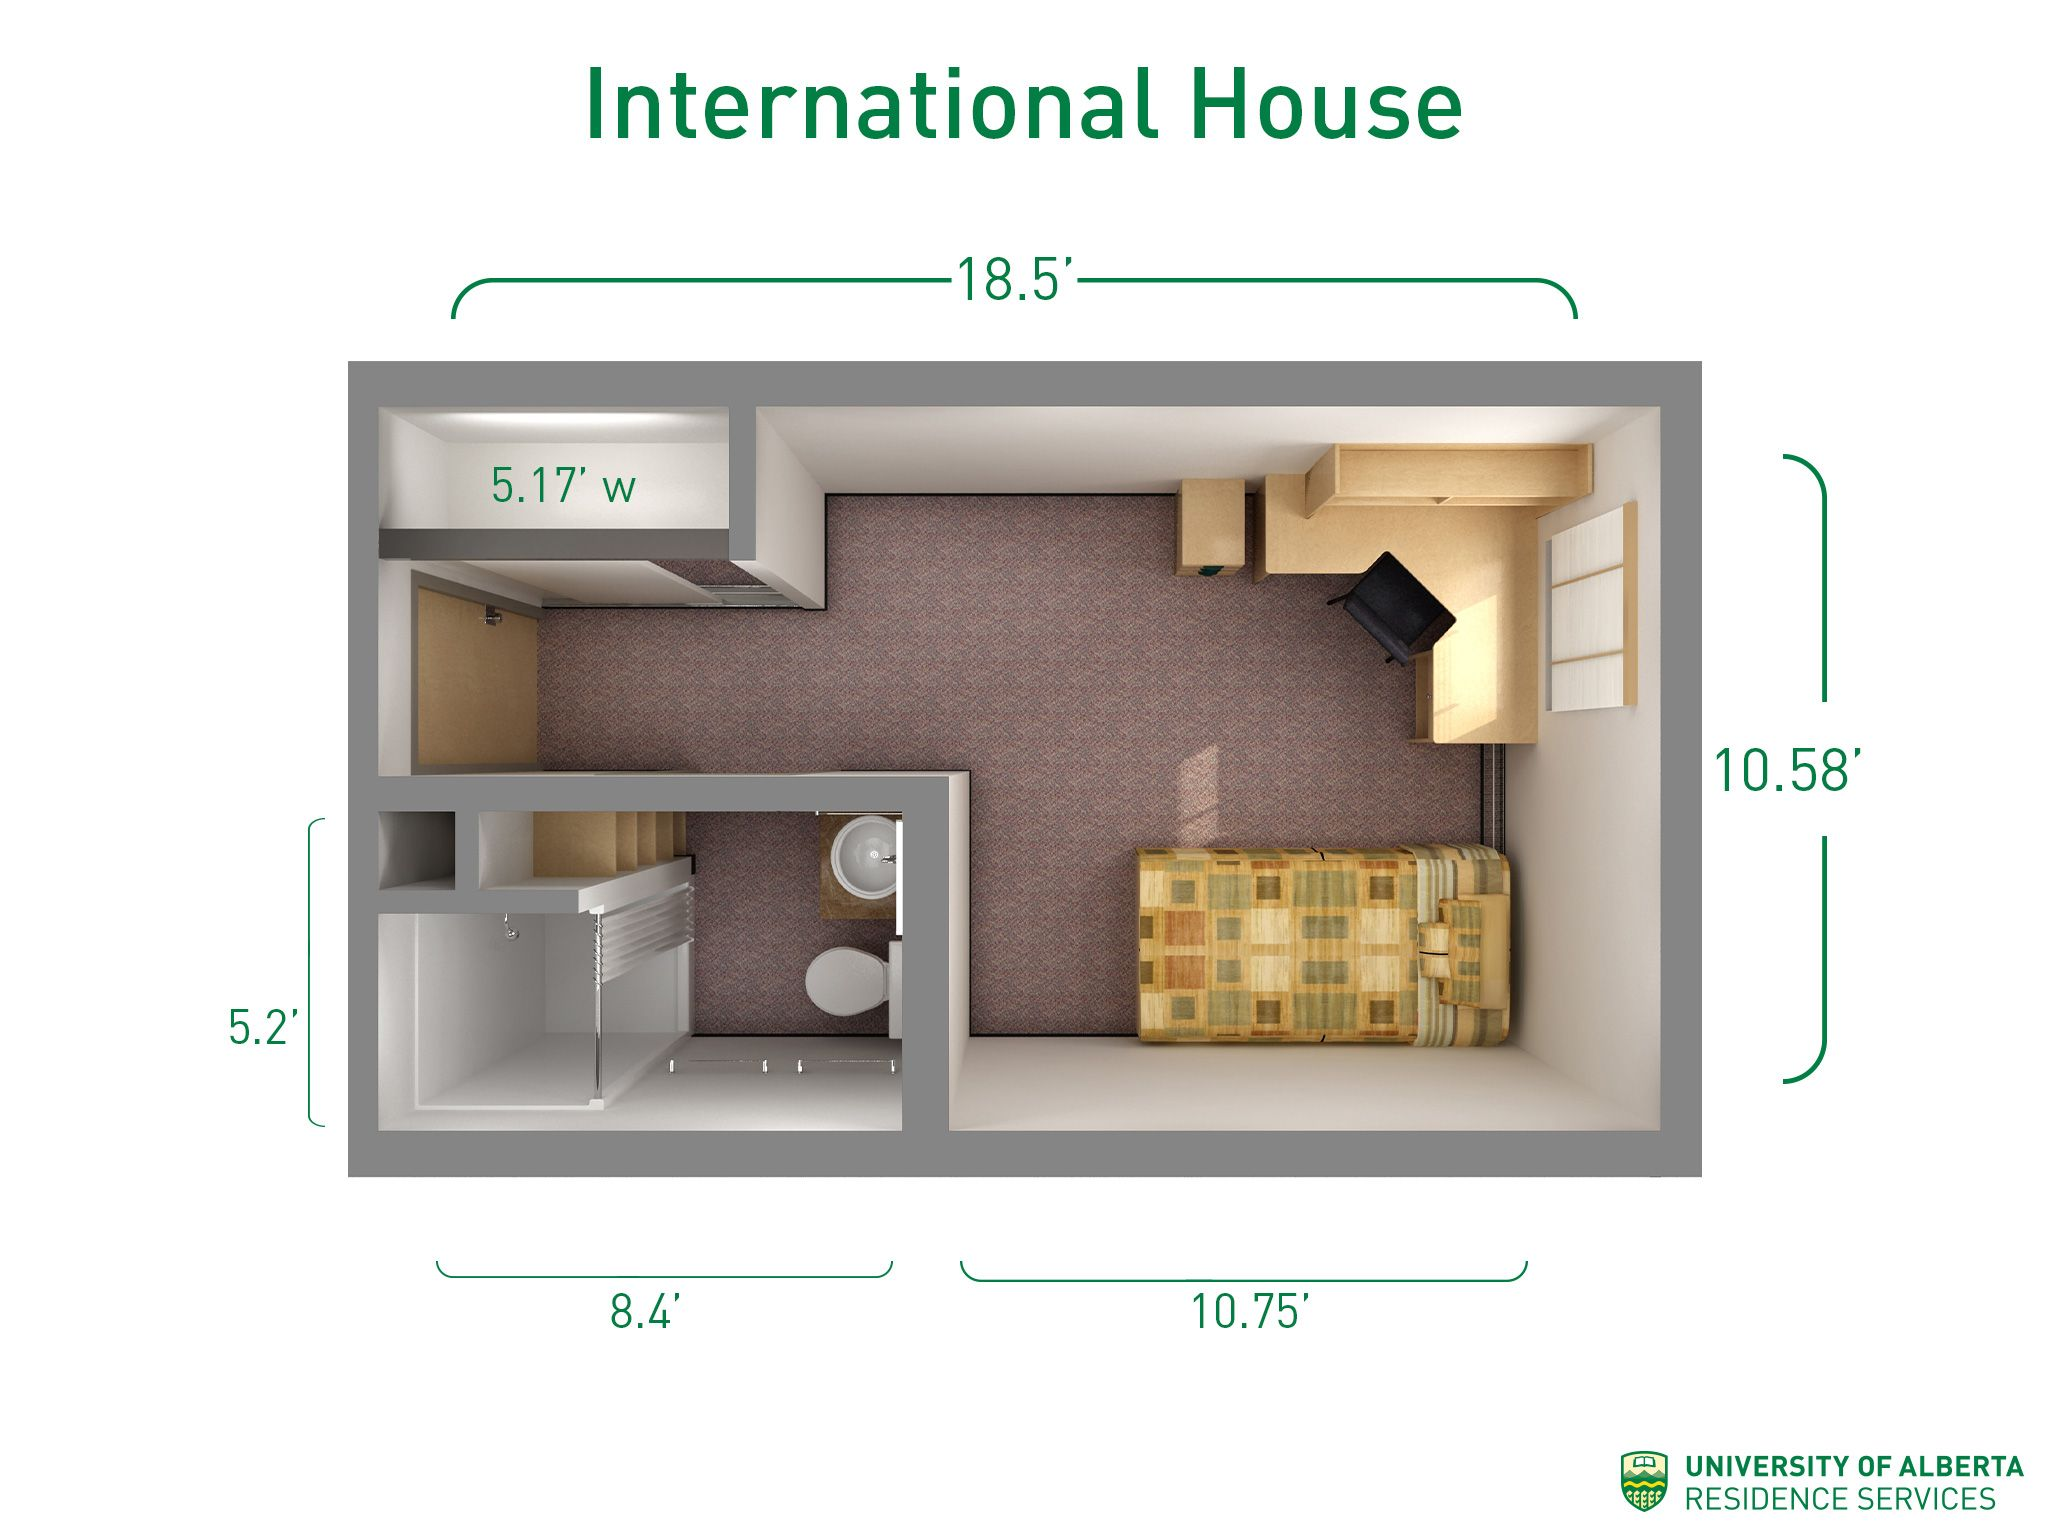 Floorplan with dimensions for units in International House